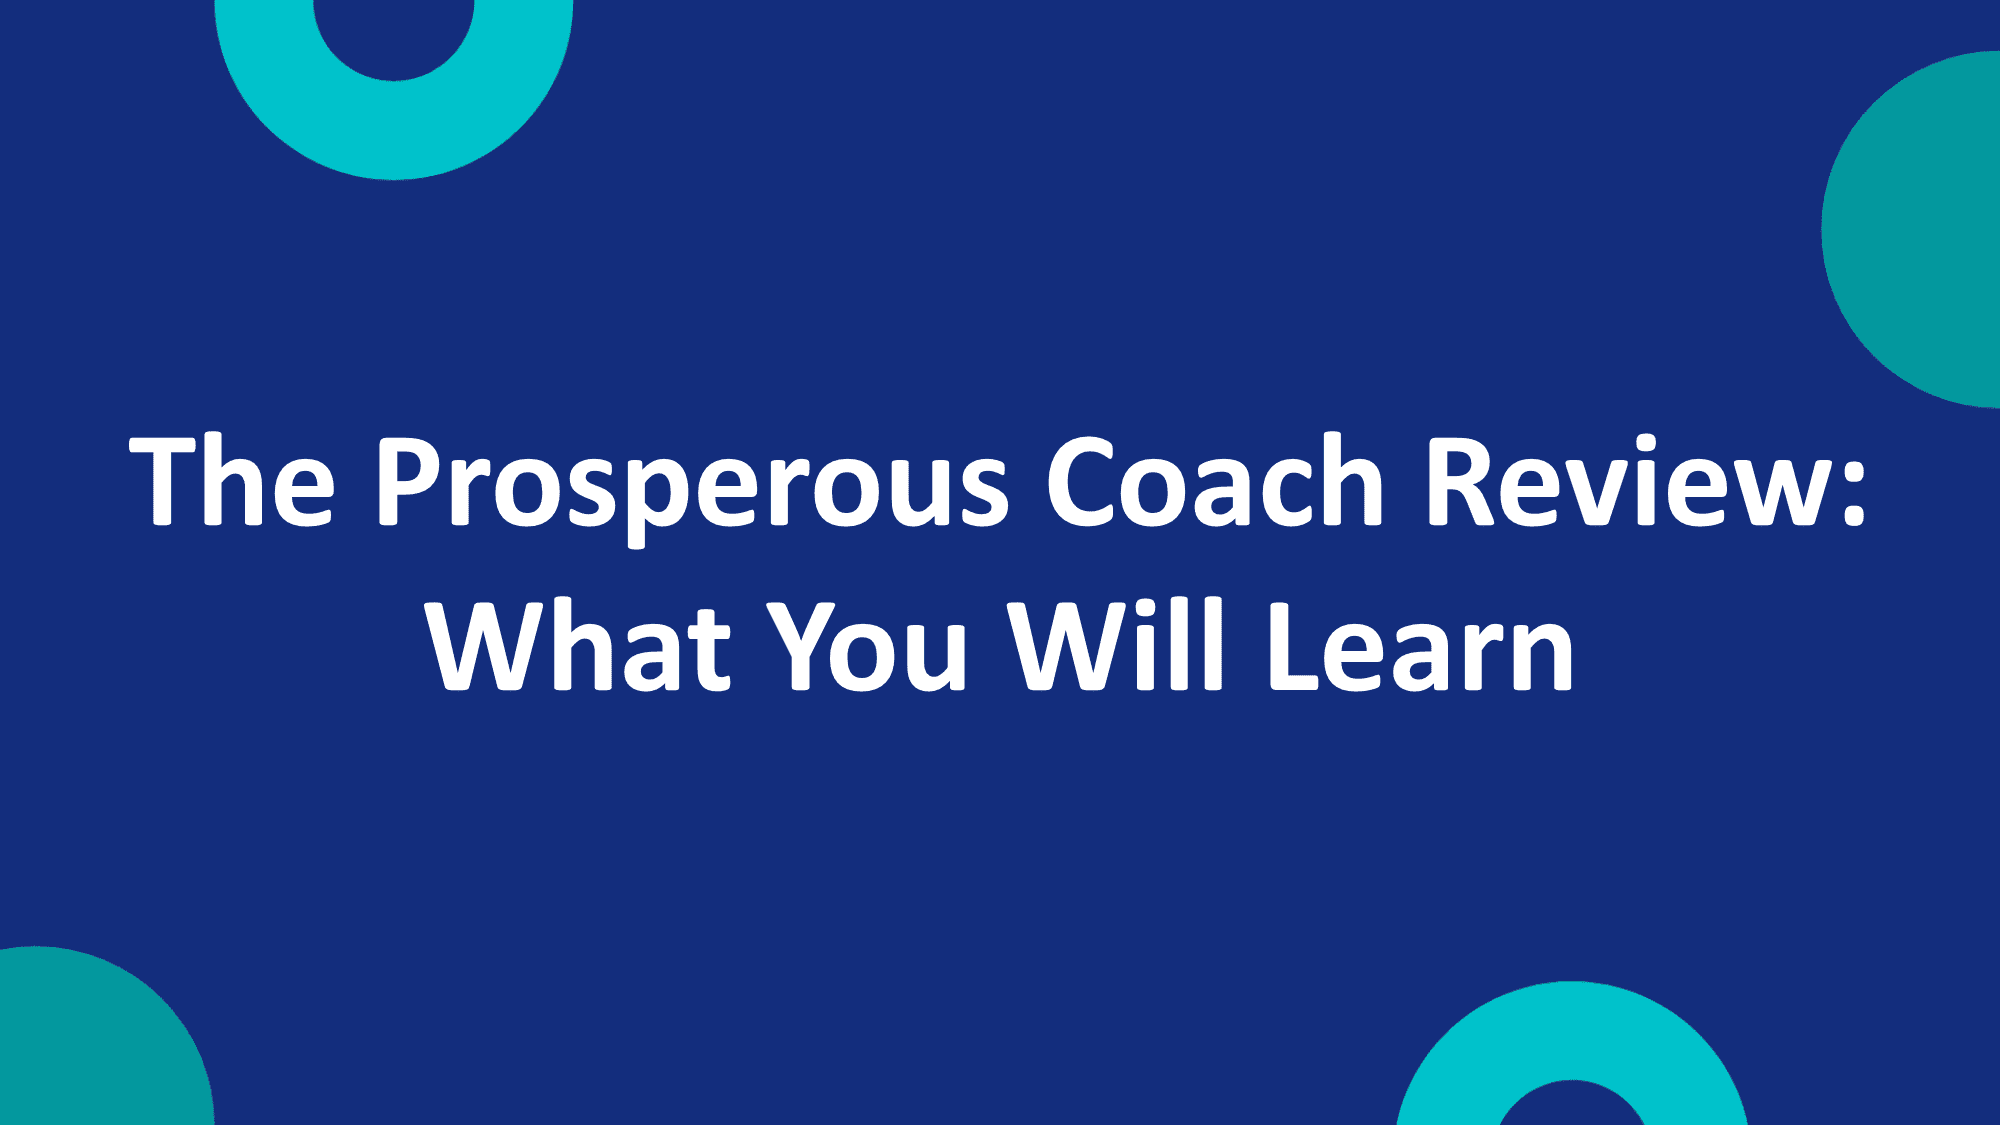 The Prosperous Coach Review